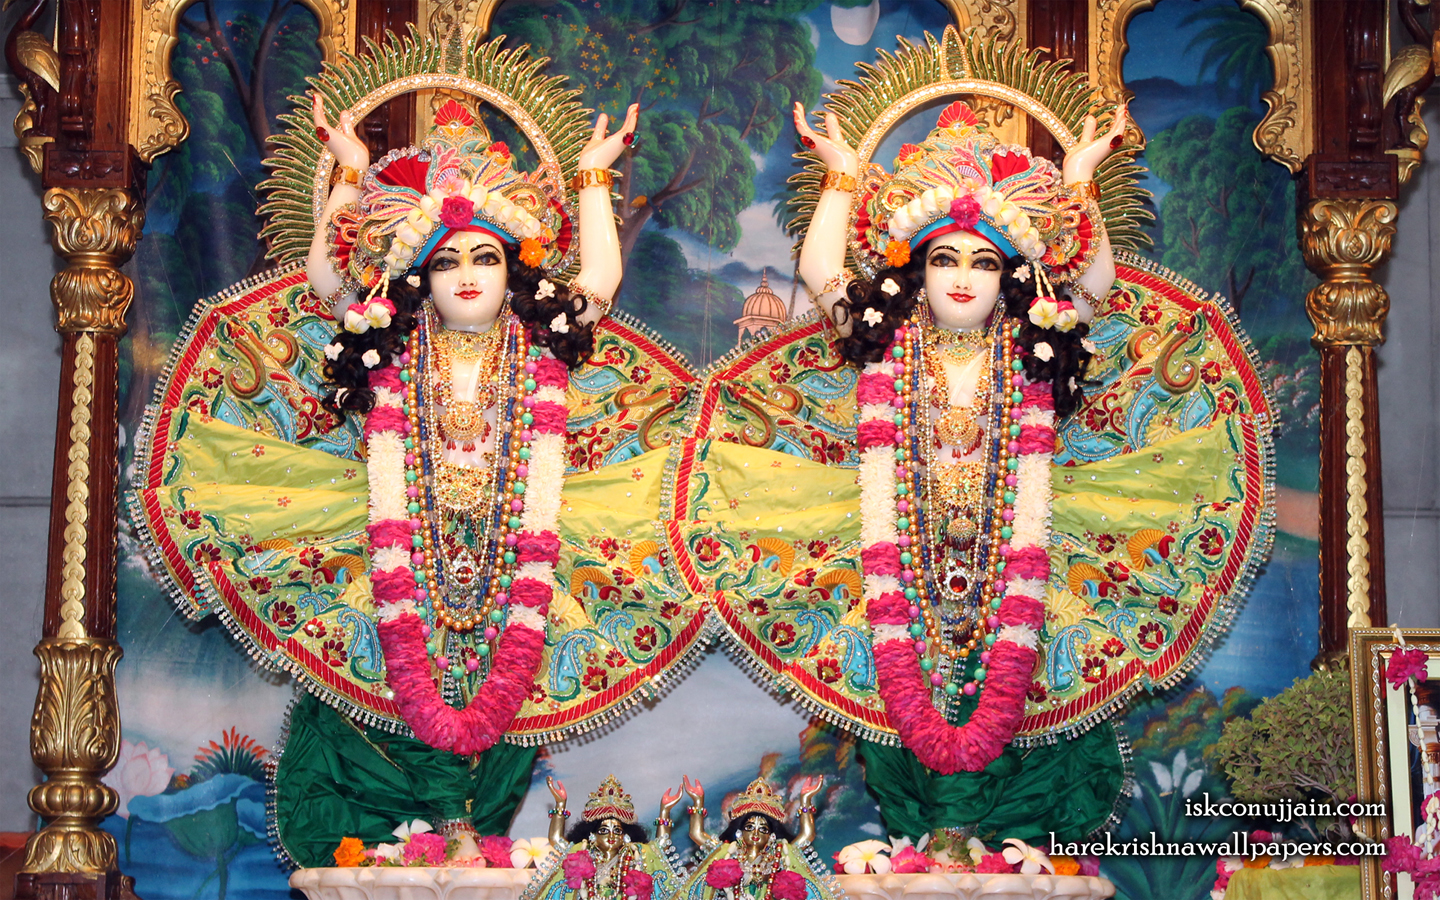 Sri Sri Gaura Nitai Wallpaper (011) Size 1440x900 Download